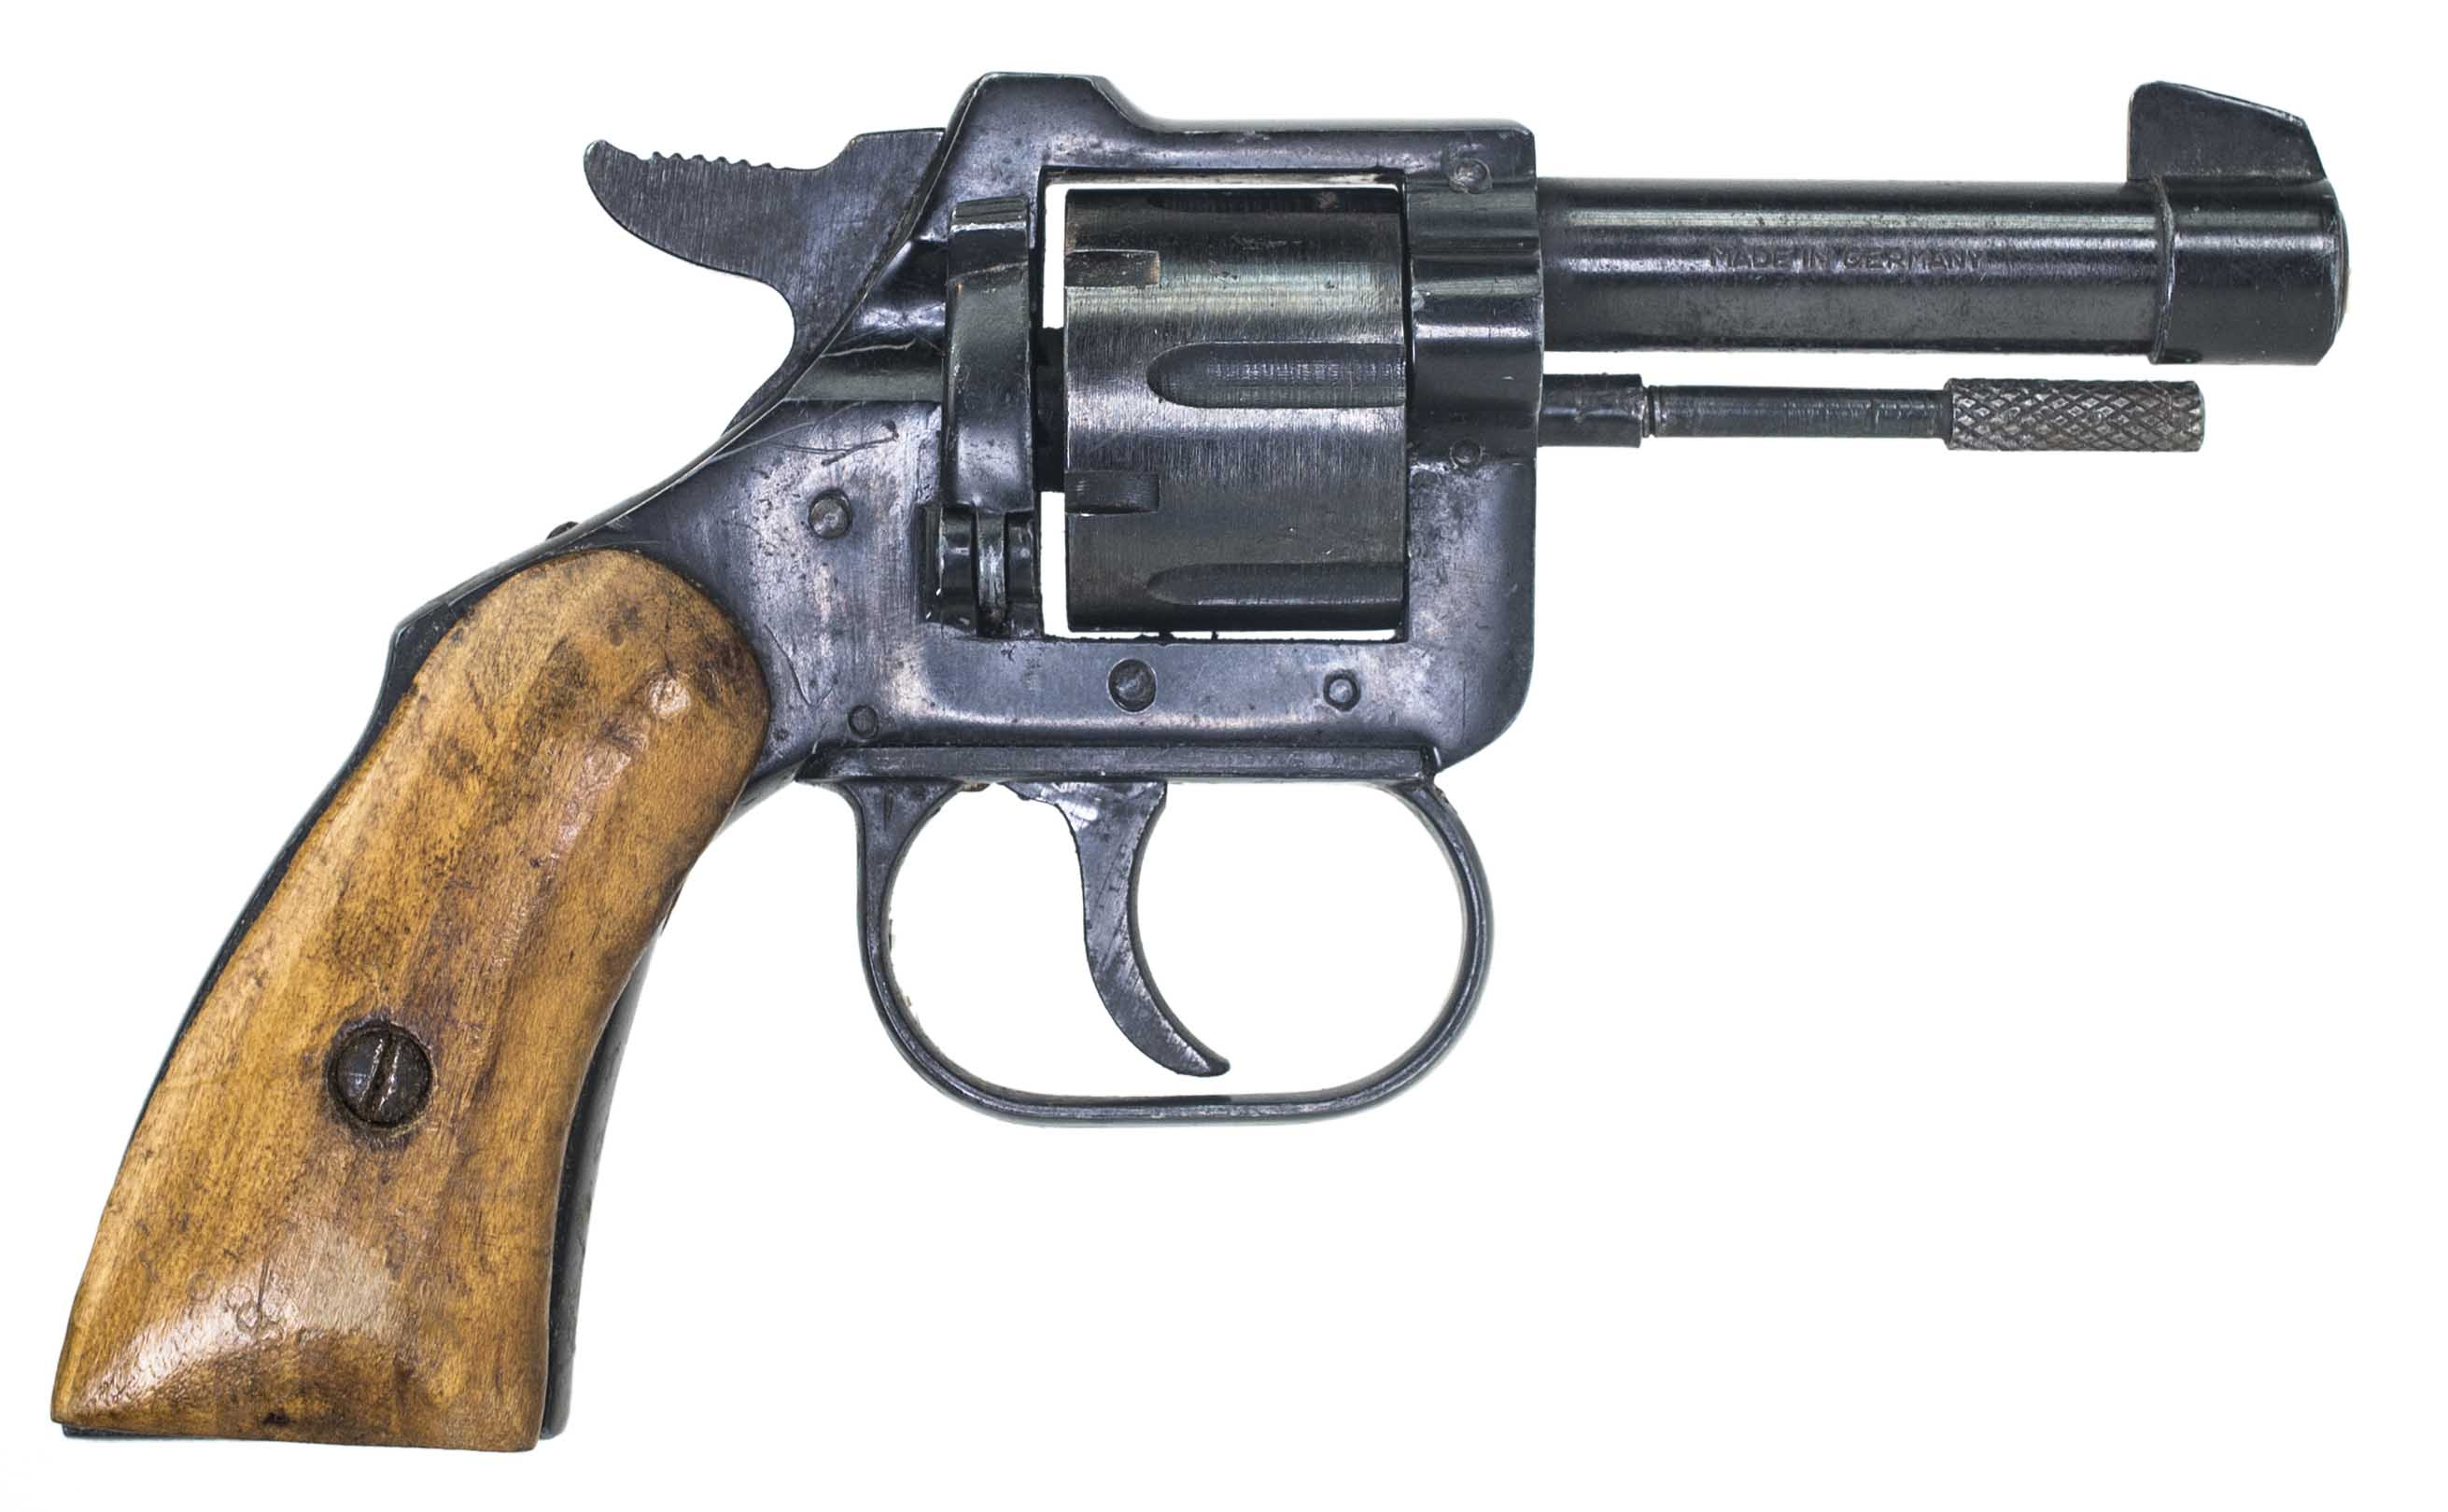 22 SHORT REVOLVER MADE IN GERMANY (Auction ID: 5608514, End